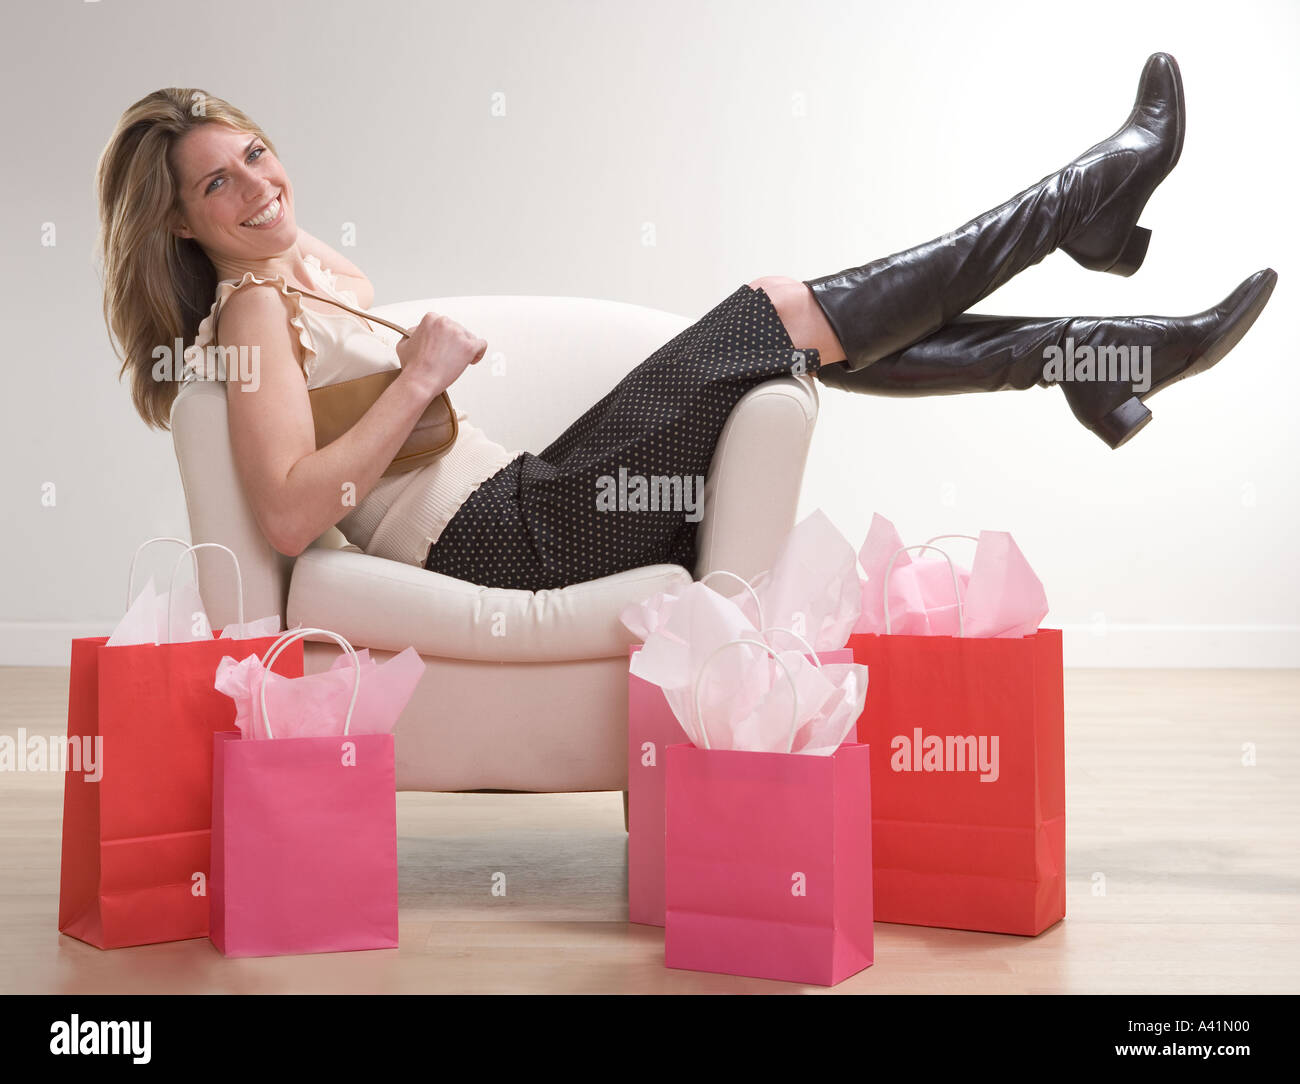 Woman relaxing after shopping - Stock Image